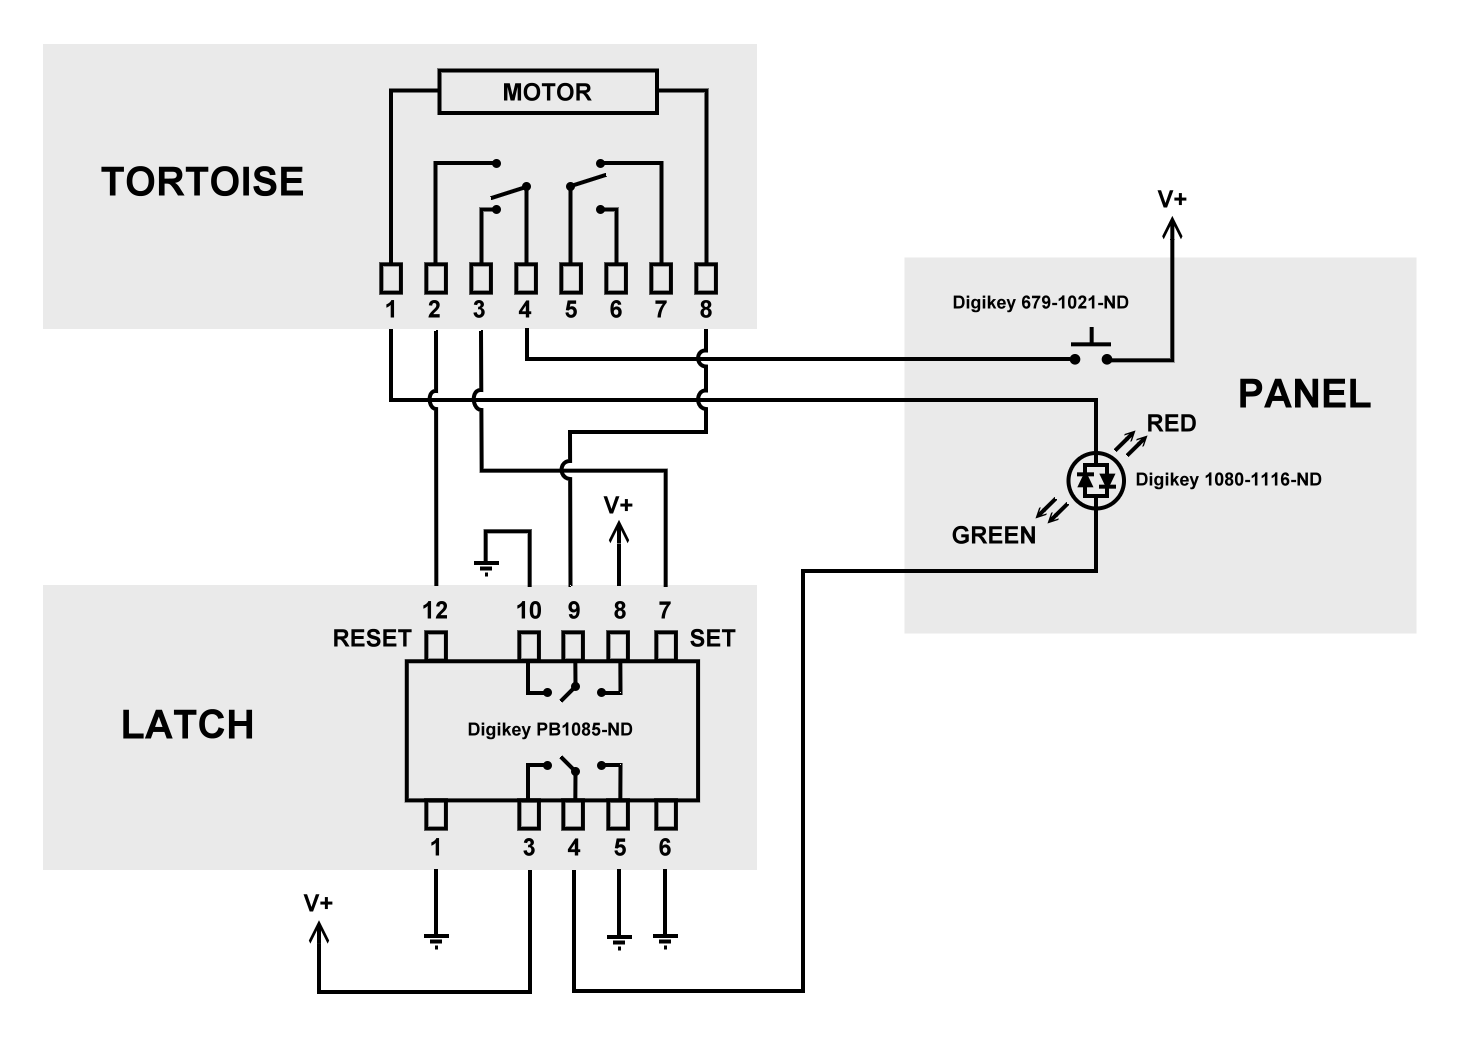 Tortoise Wiring Diagram For Controls